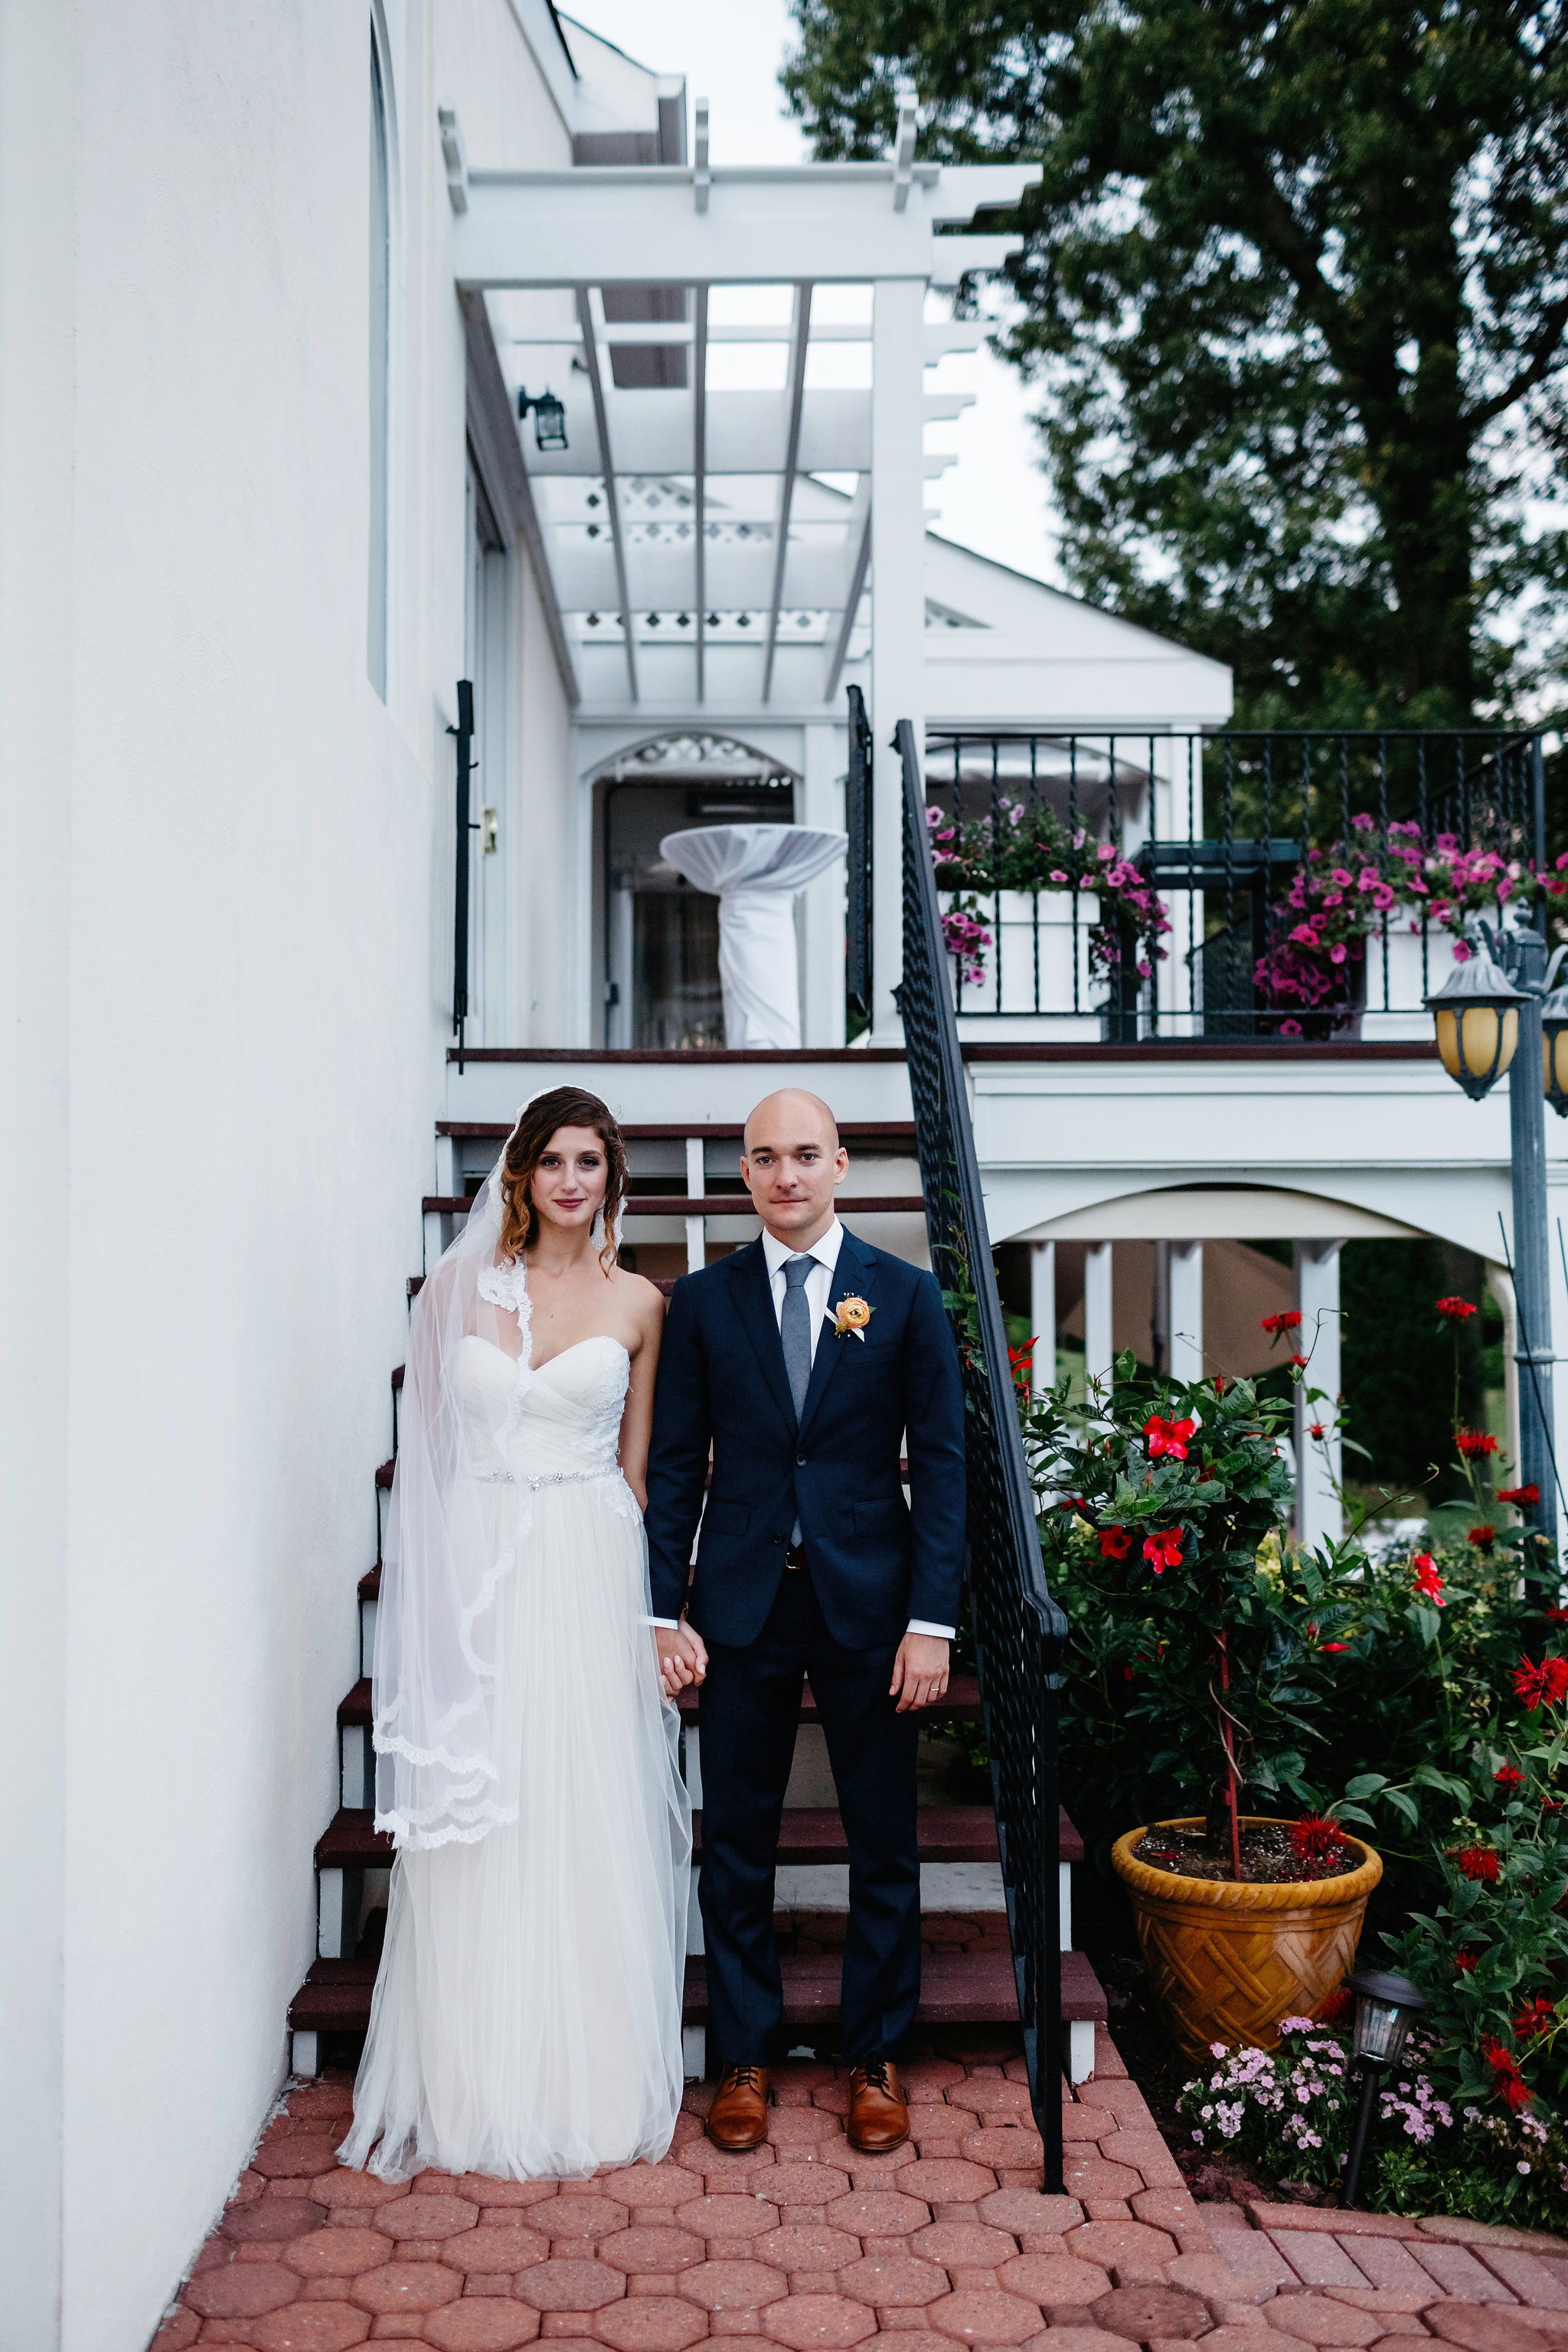 Maria&Dave2017-07-28at9.37.00AM69.jpg